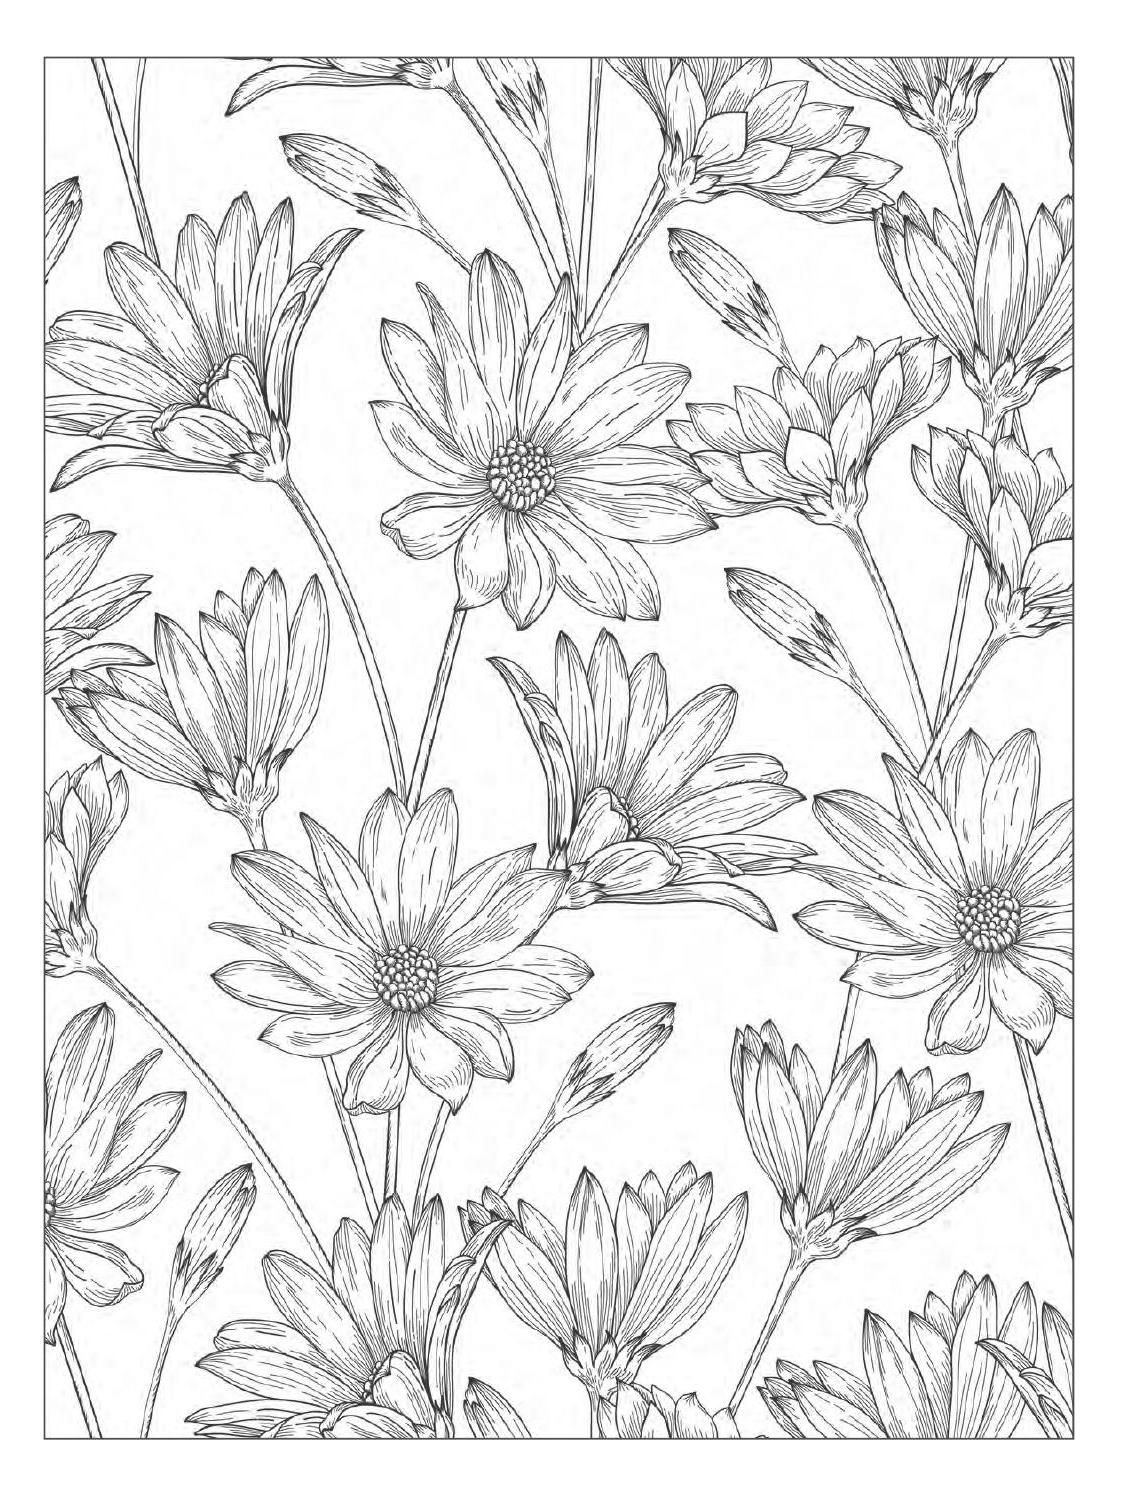 Beautiful Flowers Detailed Floral Designs Coloring Book Preview Designs Coloring Books Flower Coloring Pages Coloring Books